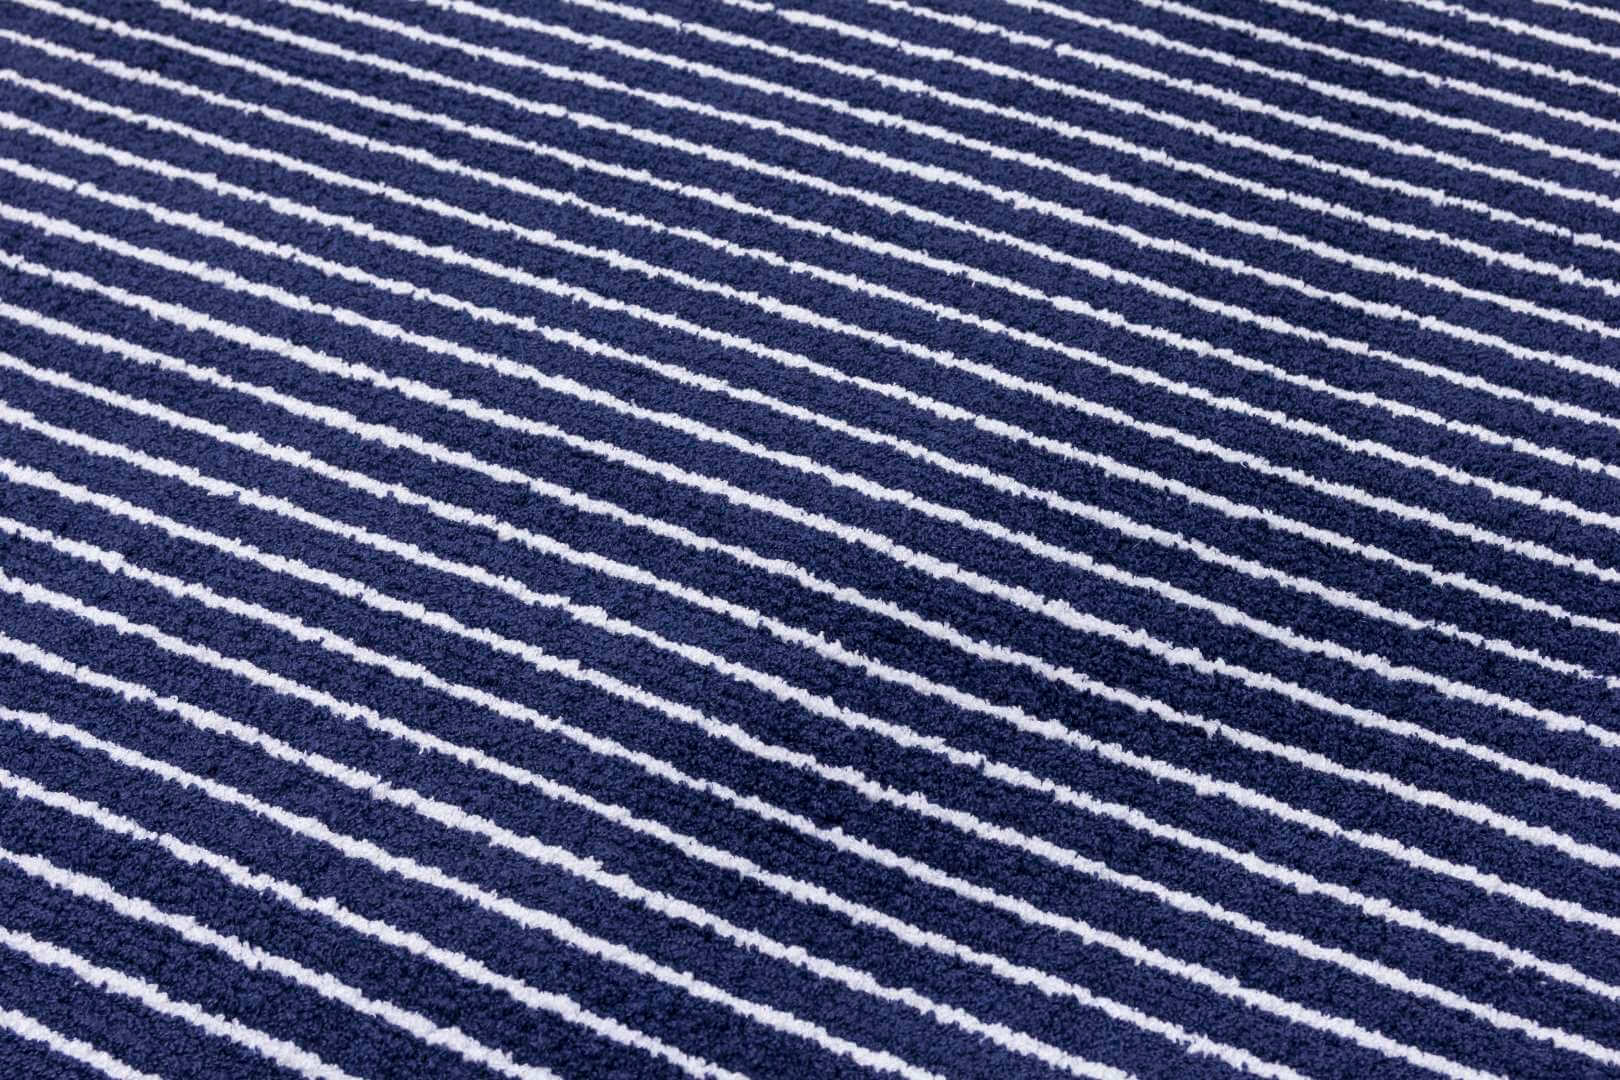 Ambience-Stripes-Navy-Blue-Detail-Large-1